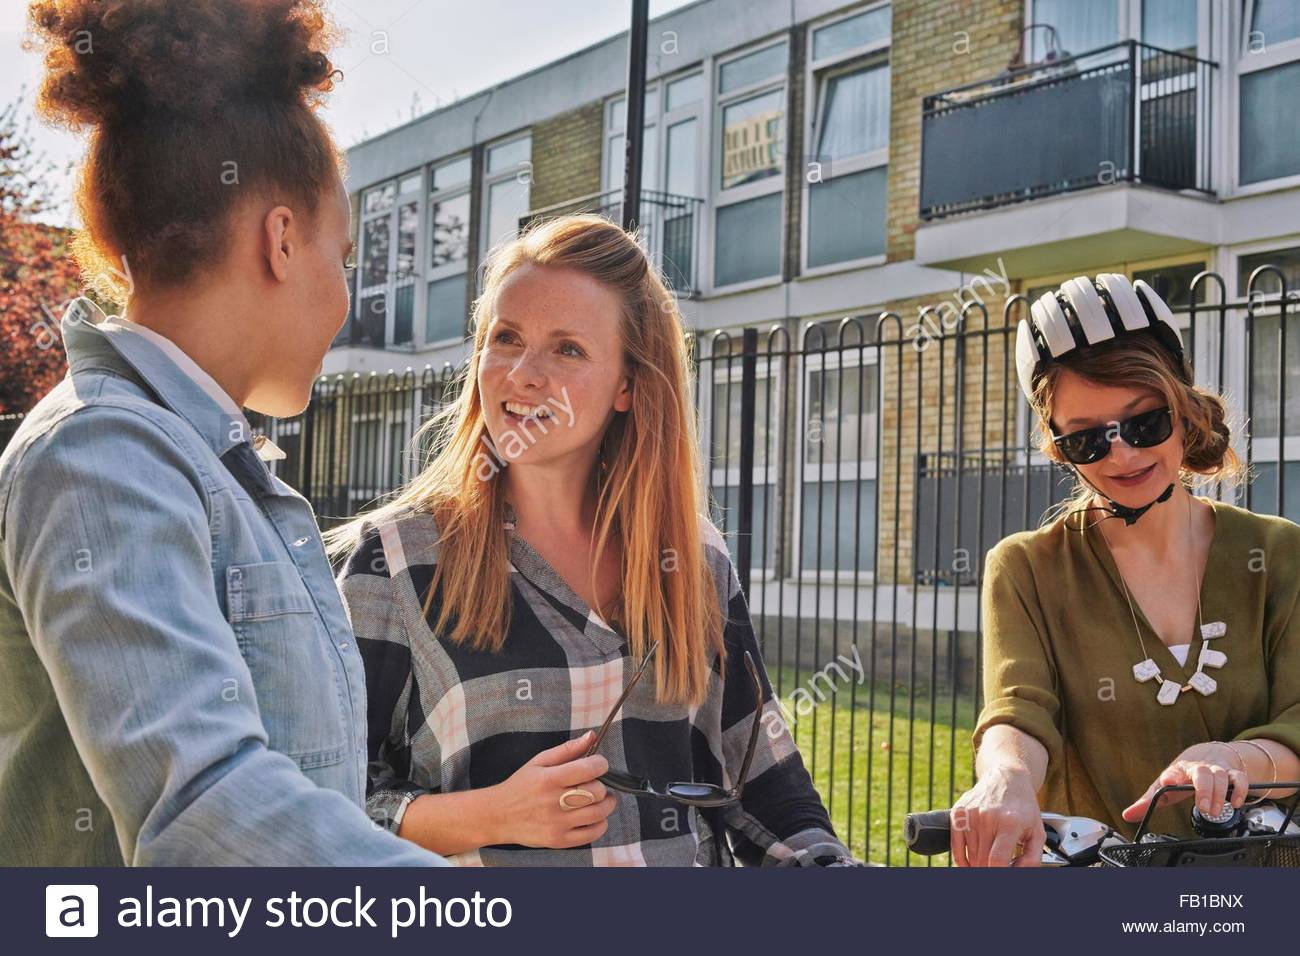 Women in urban area, waist up, standing chatting - Stock Image